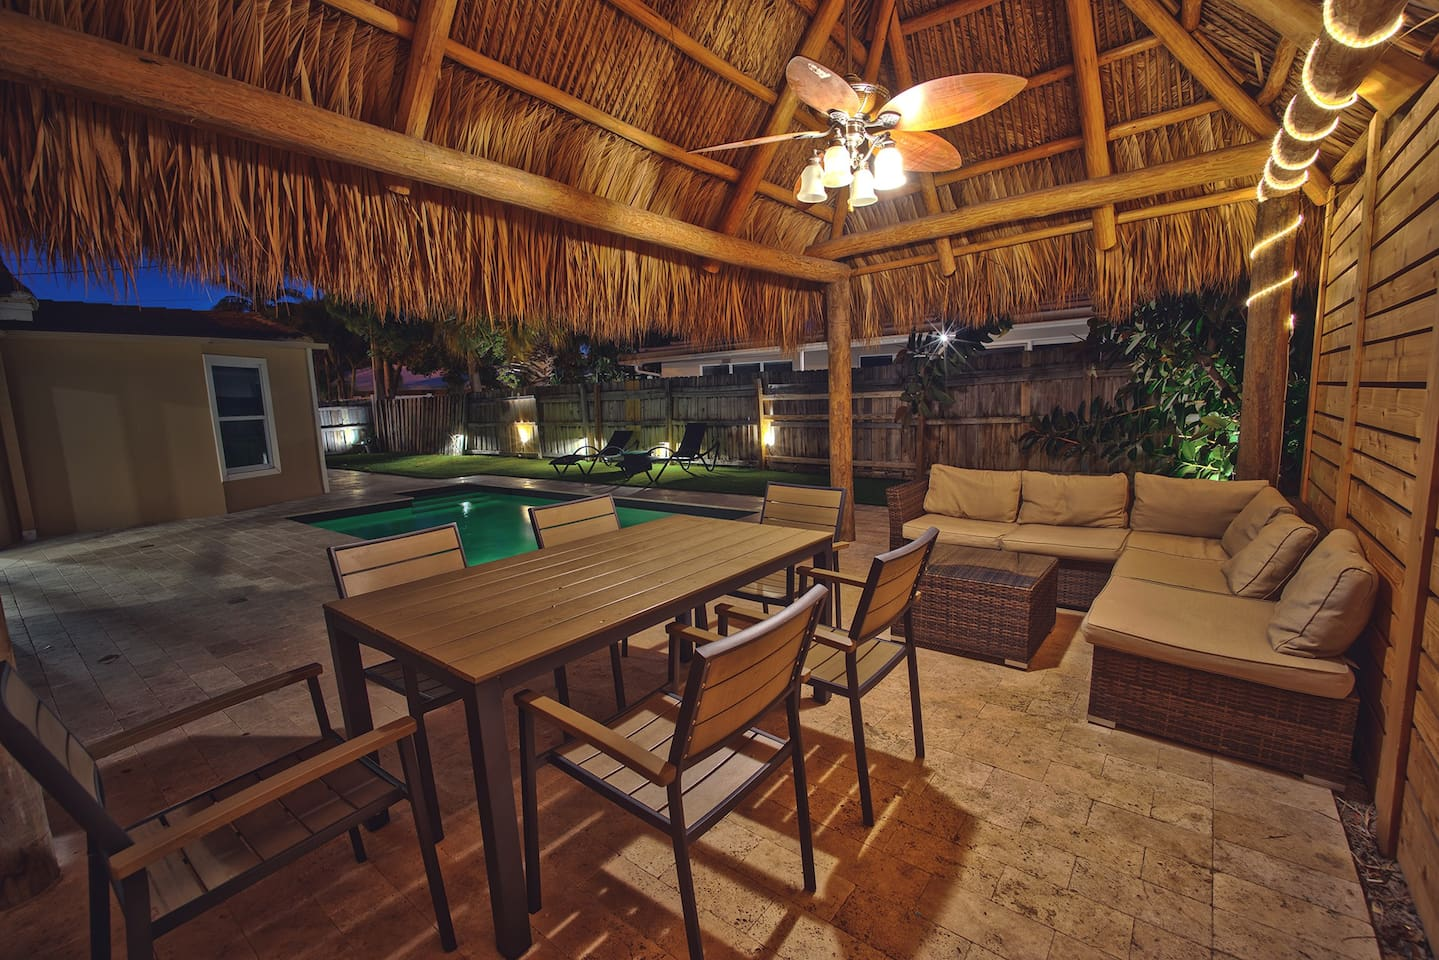 Beach 2 mins away.. TIKI HUT, Pool, Nightlife! - Houses for Rent in ...